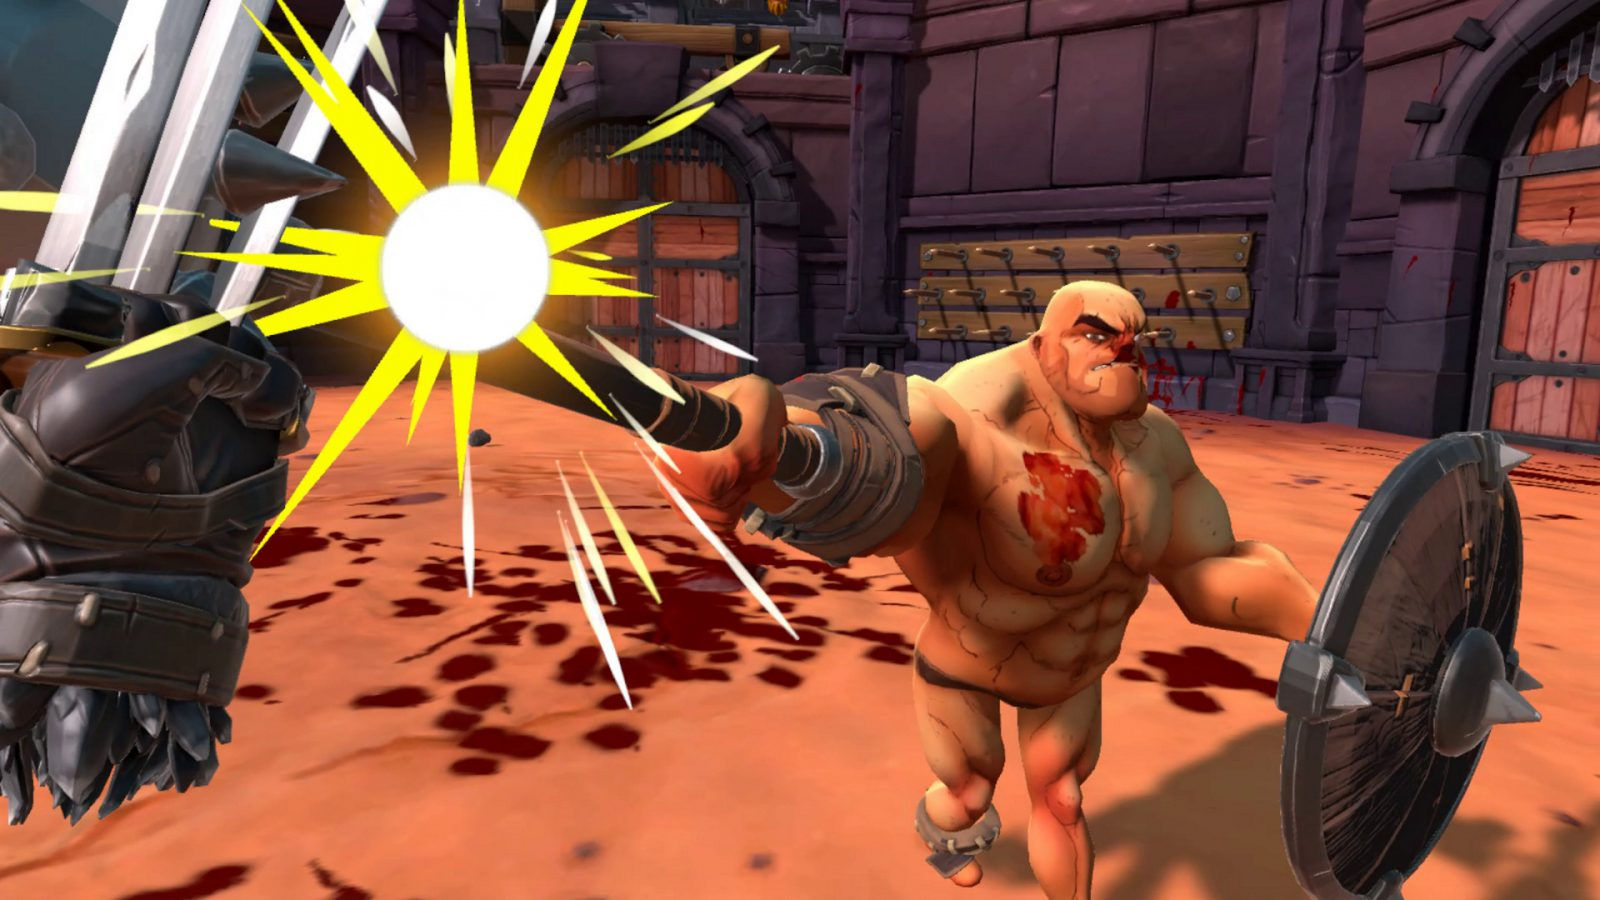 Participate in VR gladiator battles, GORN released out of early